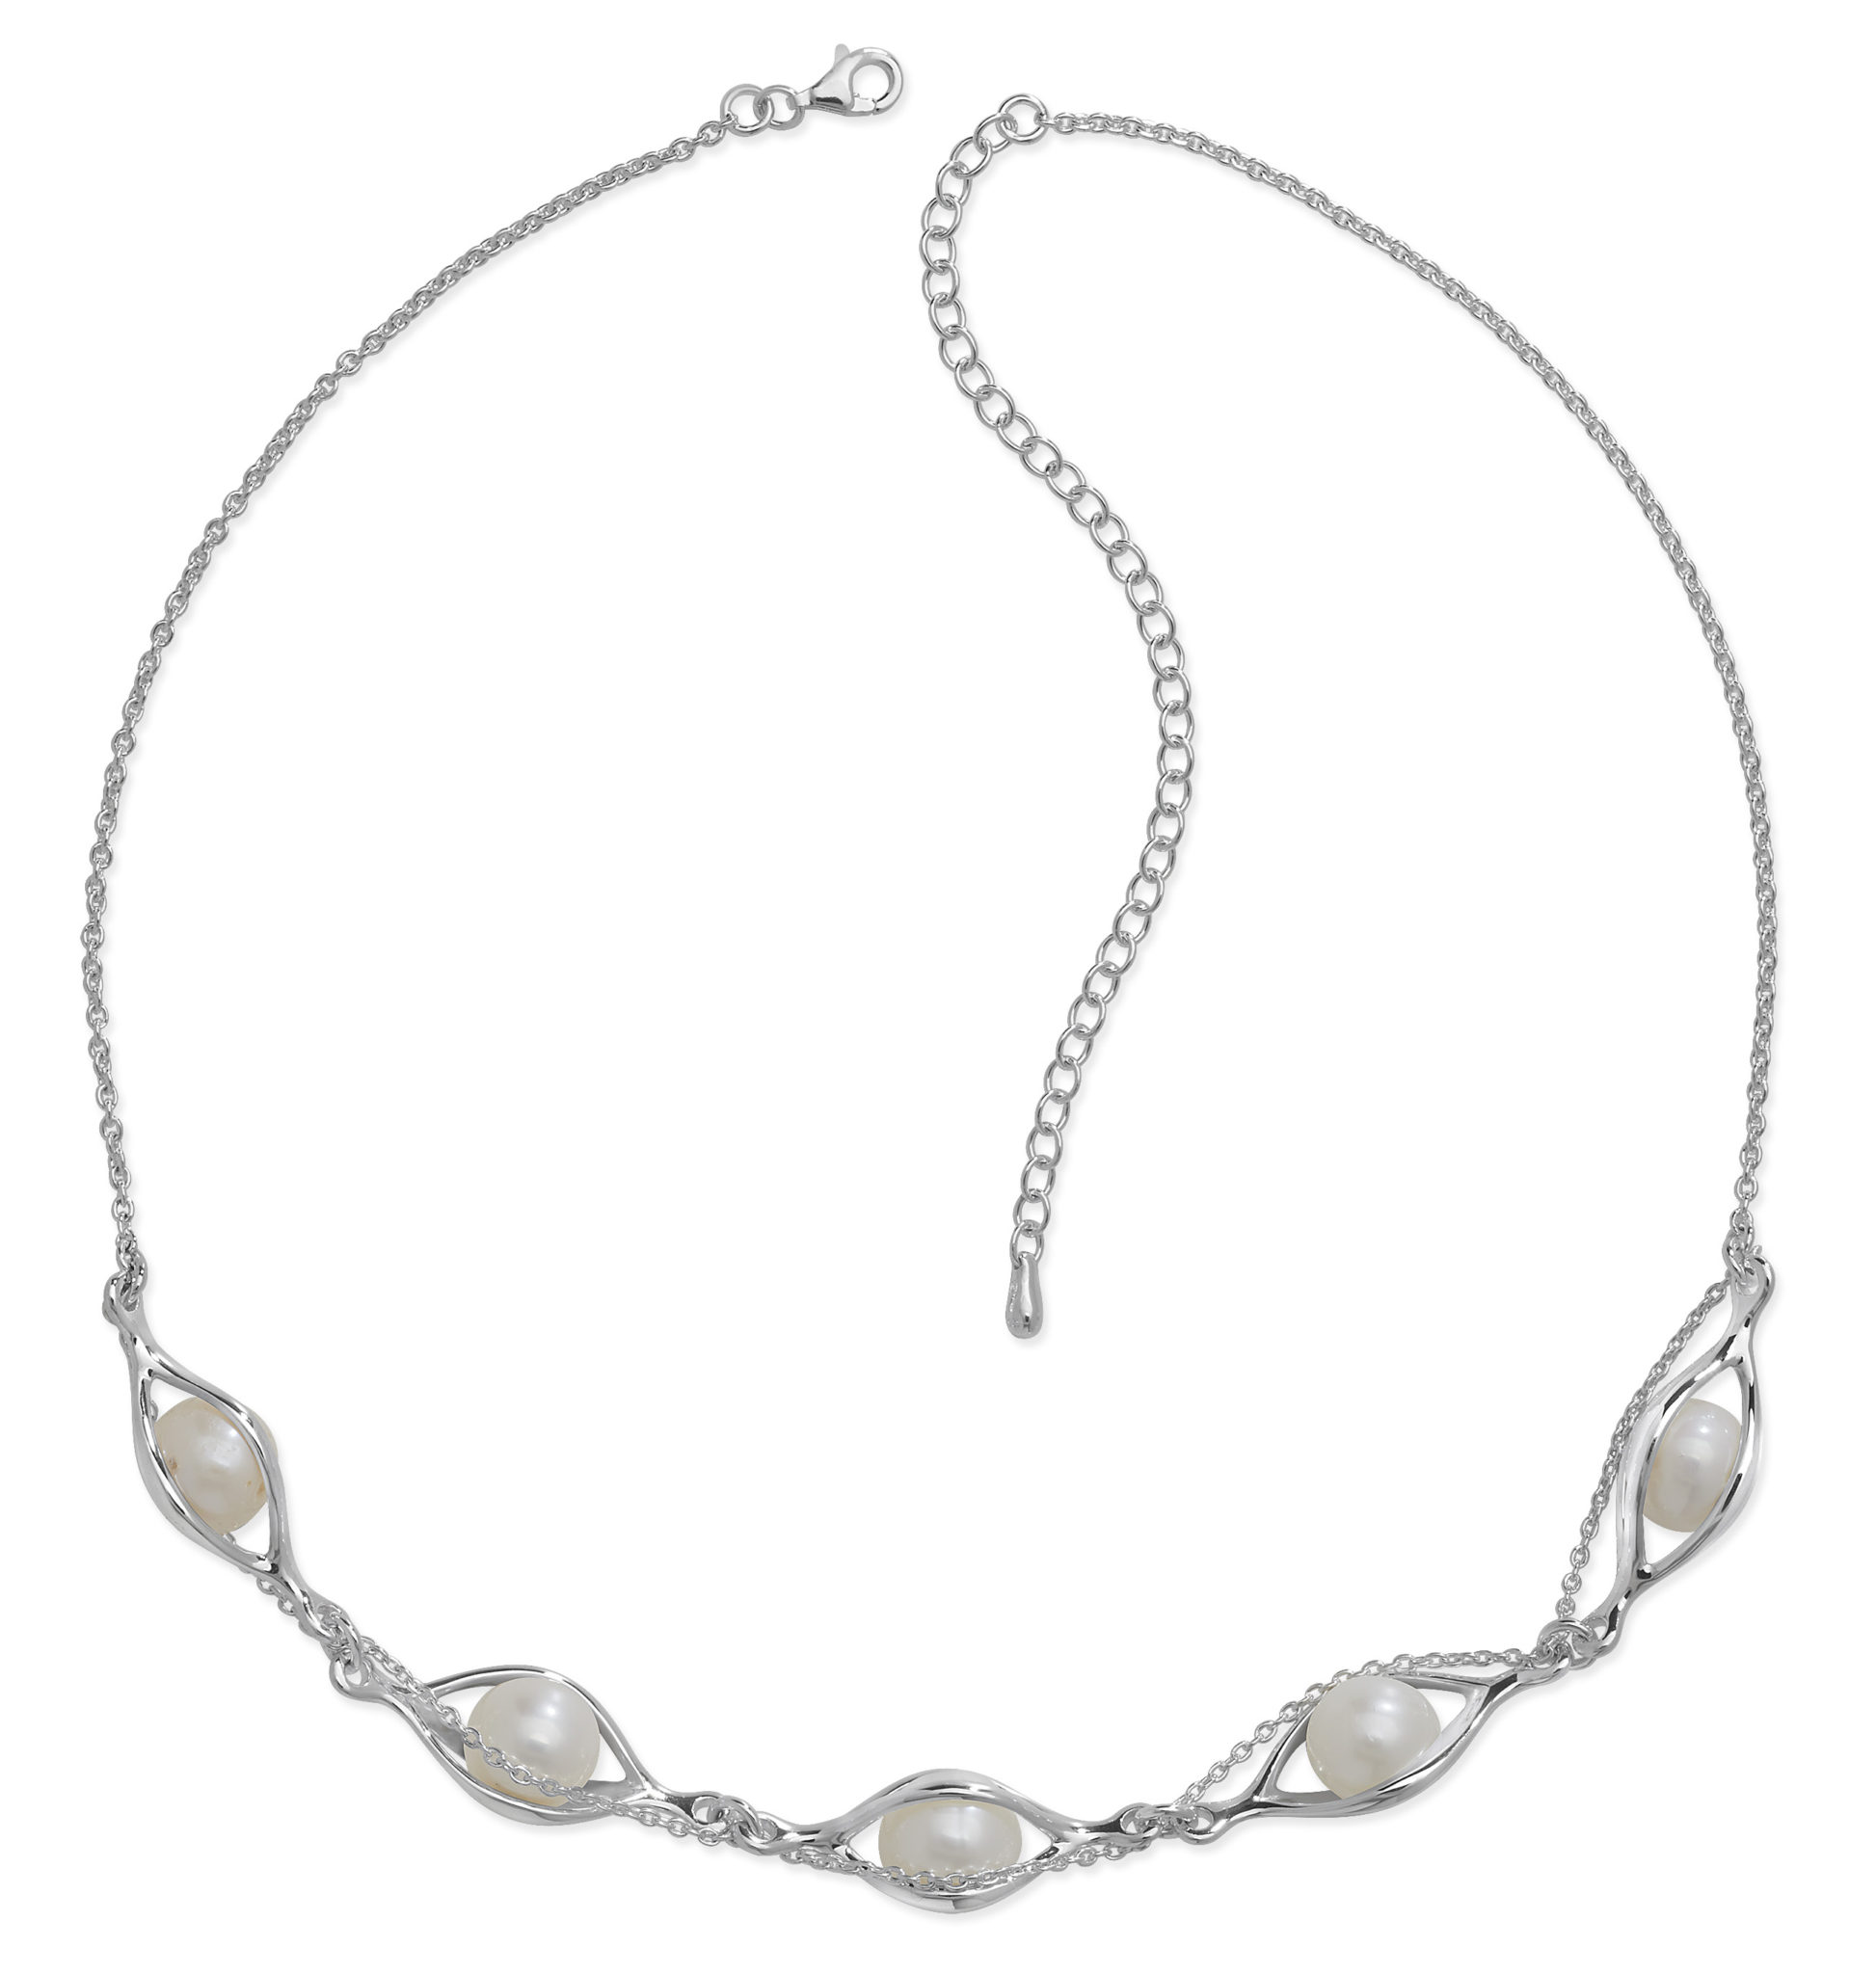 Lucy Quartermaine Dripping Necklace sGhyi